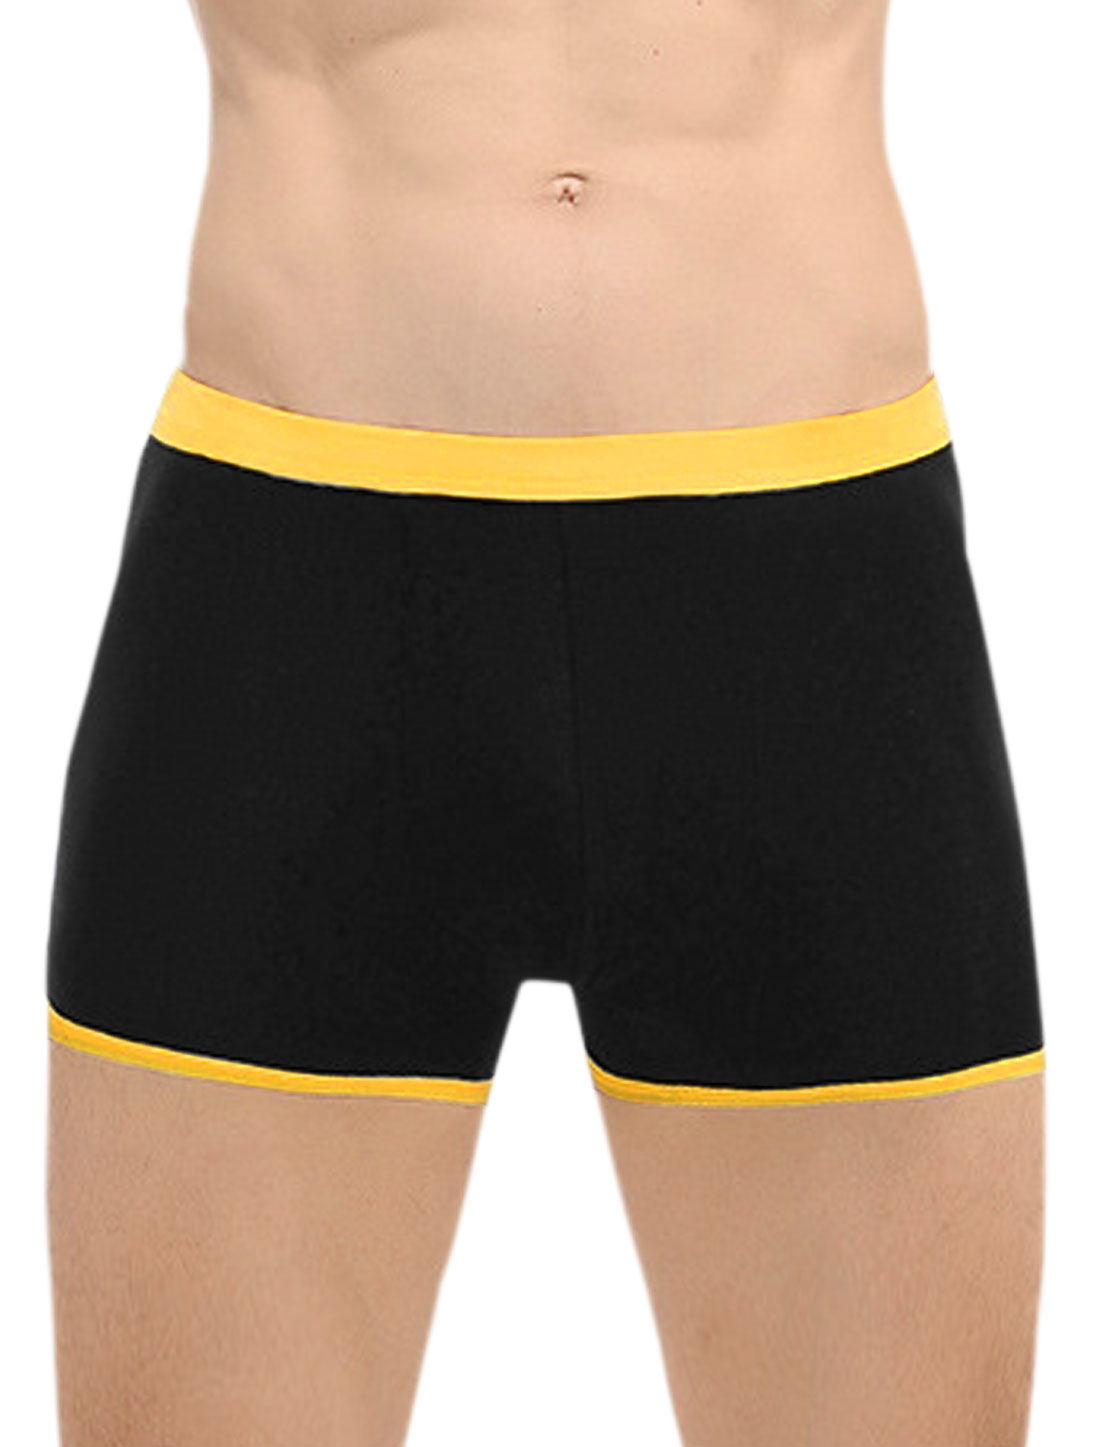 Men Elastic Waist Contrast Color Breathable Boxer Brief 1 Pack Black W34